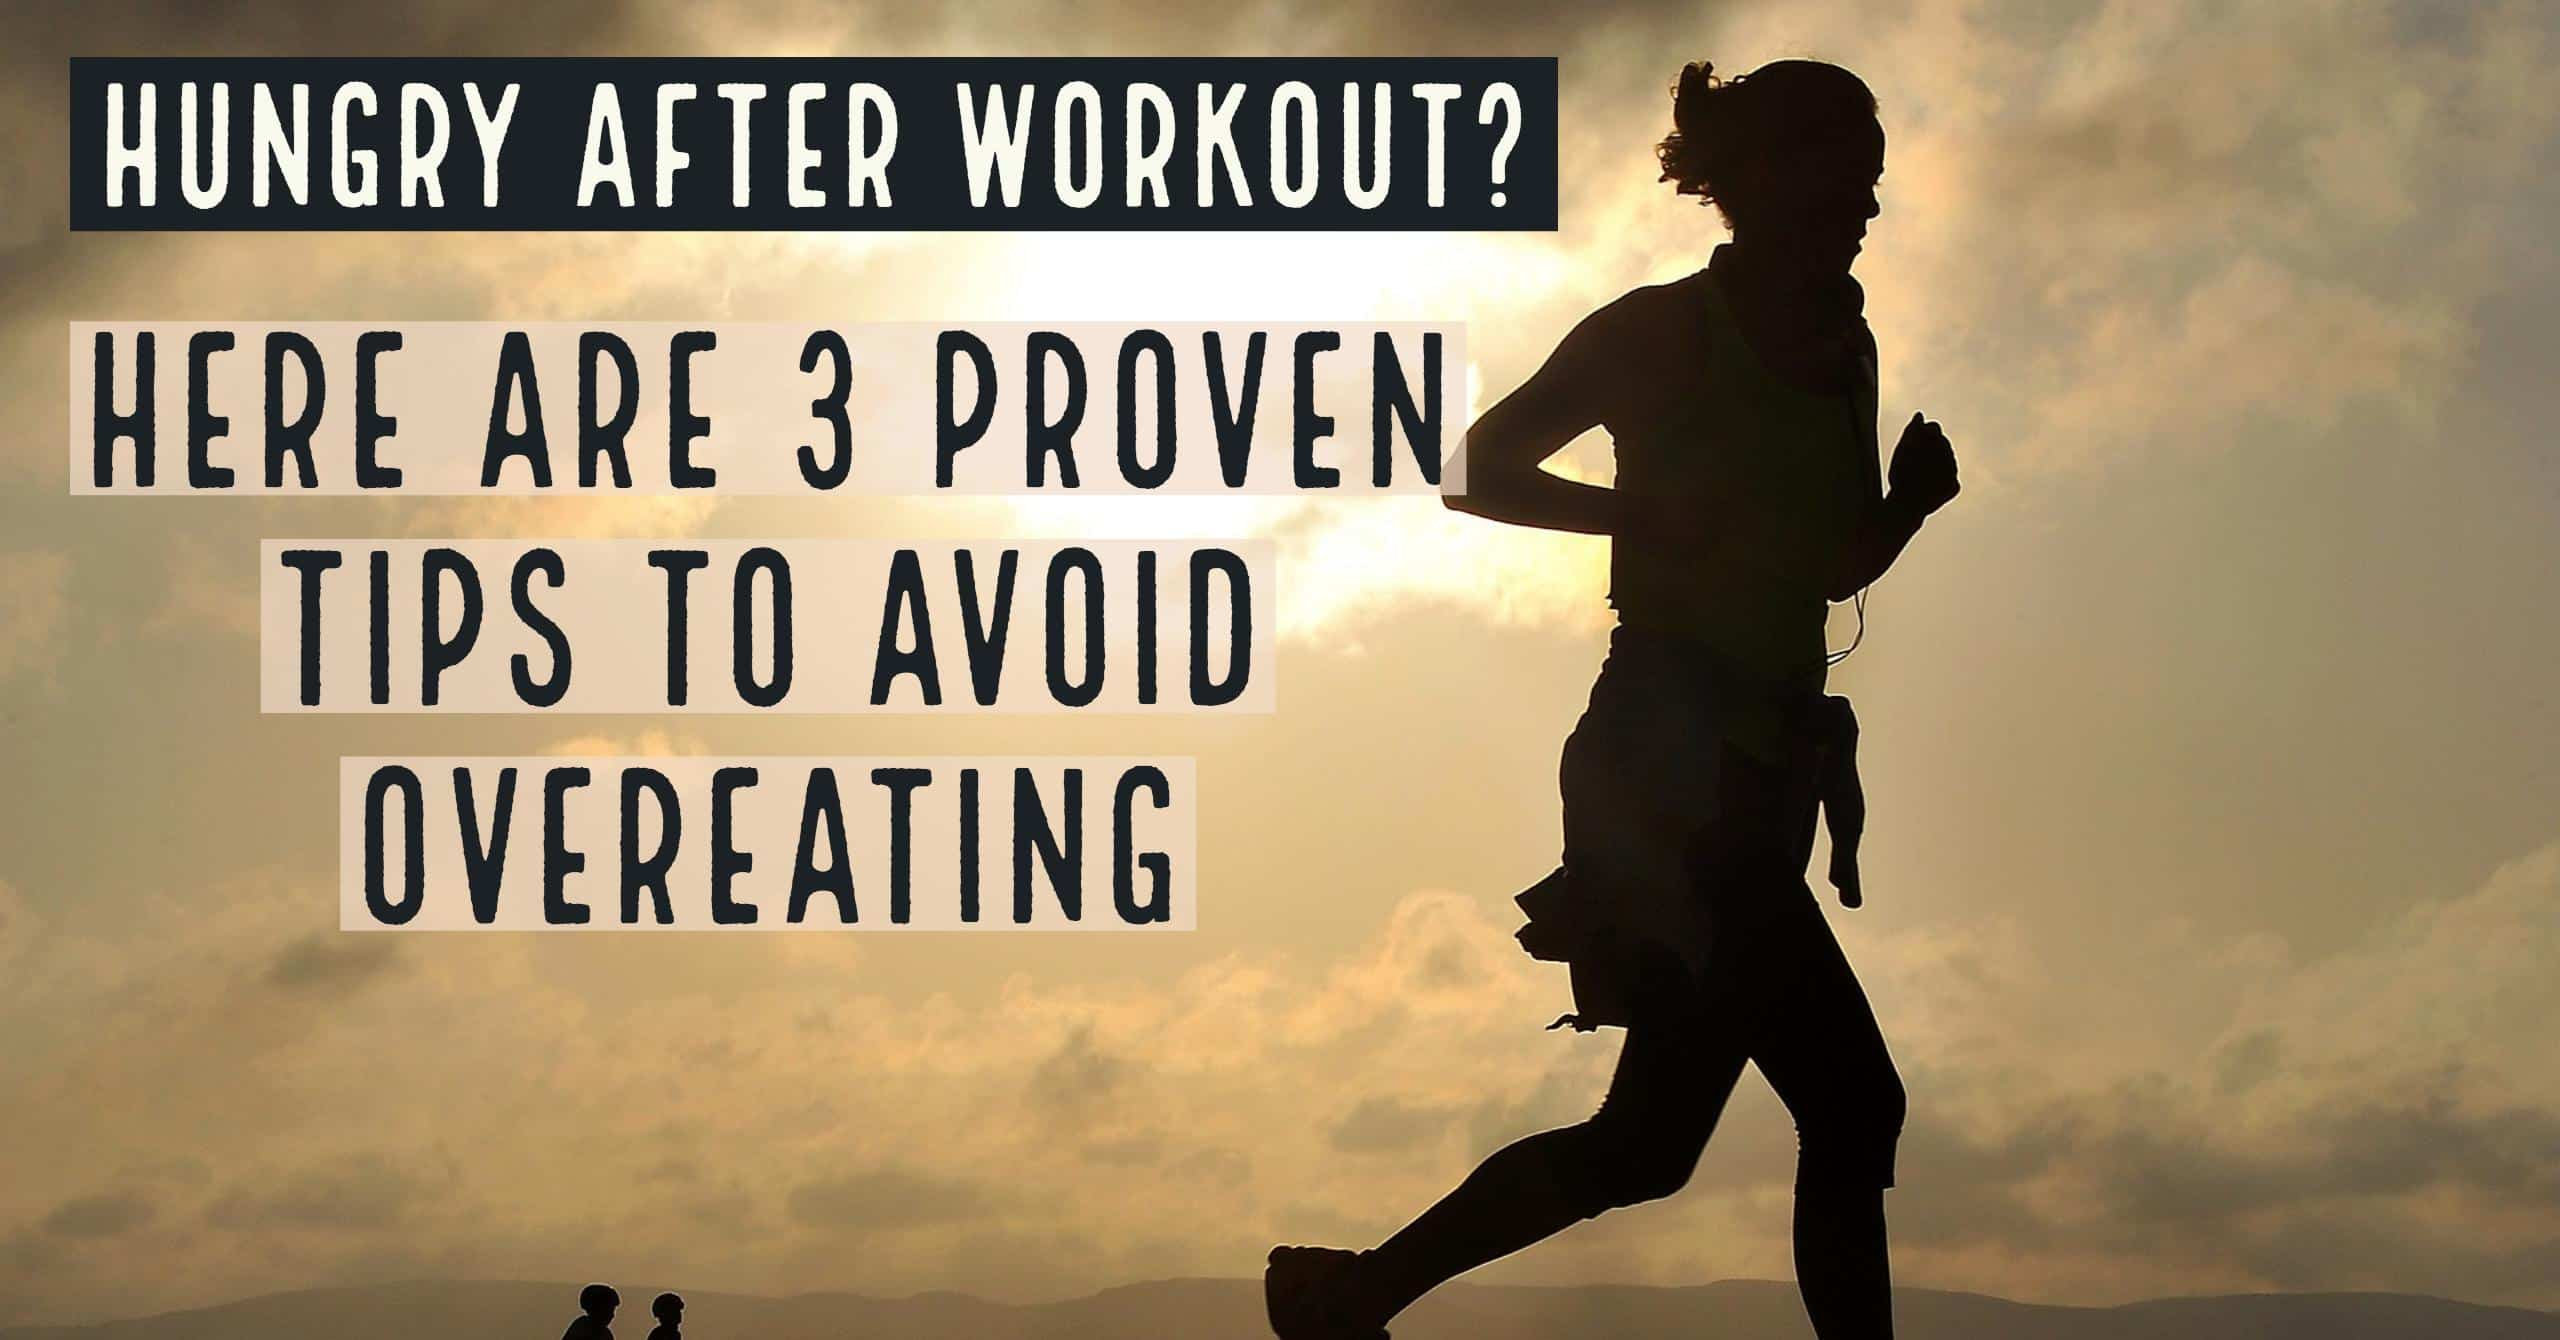 Hungry after workout? you are not alone. It's a common problem that can be easily fixed. Here are three simple to follow tips to avoid overeating.